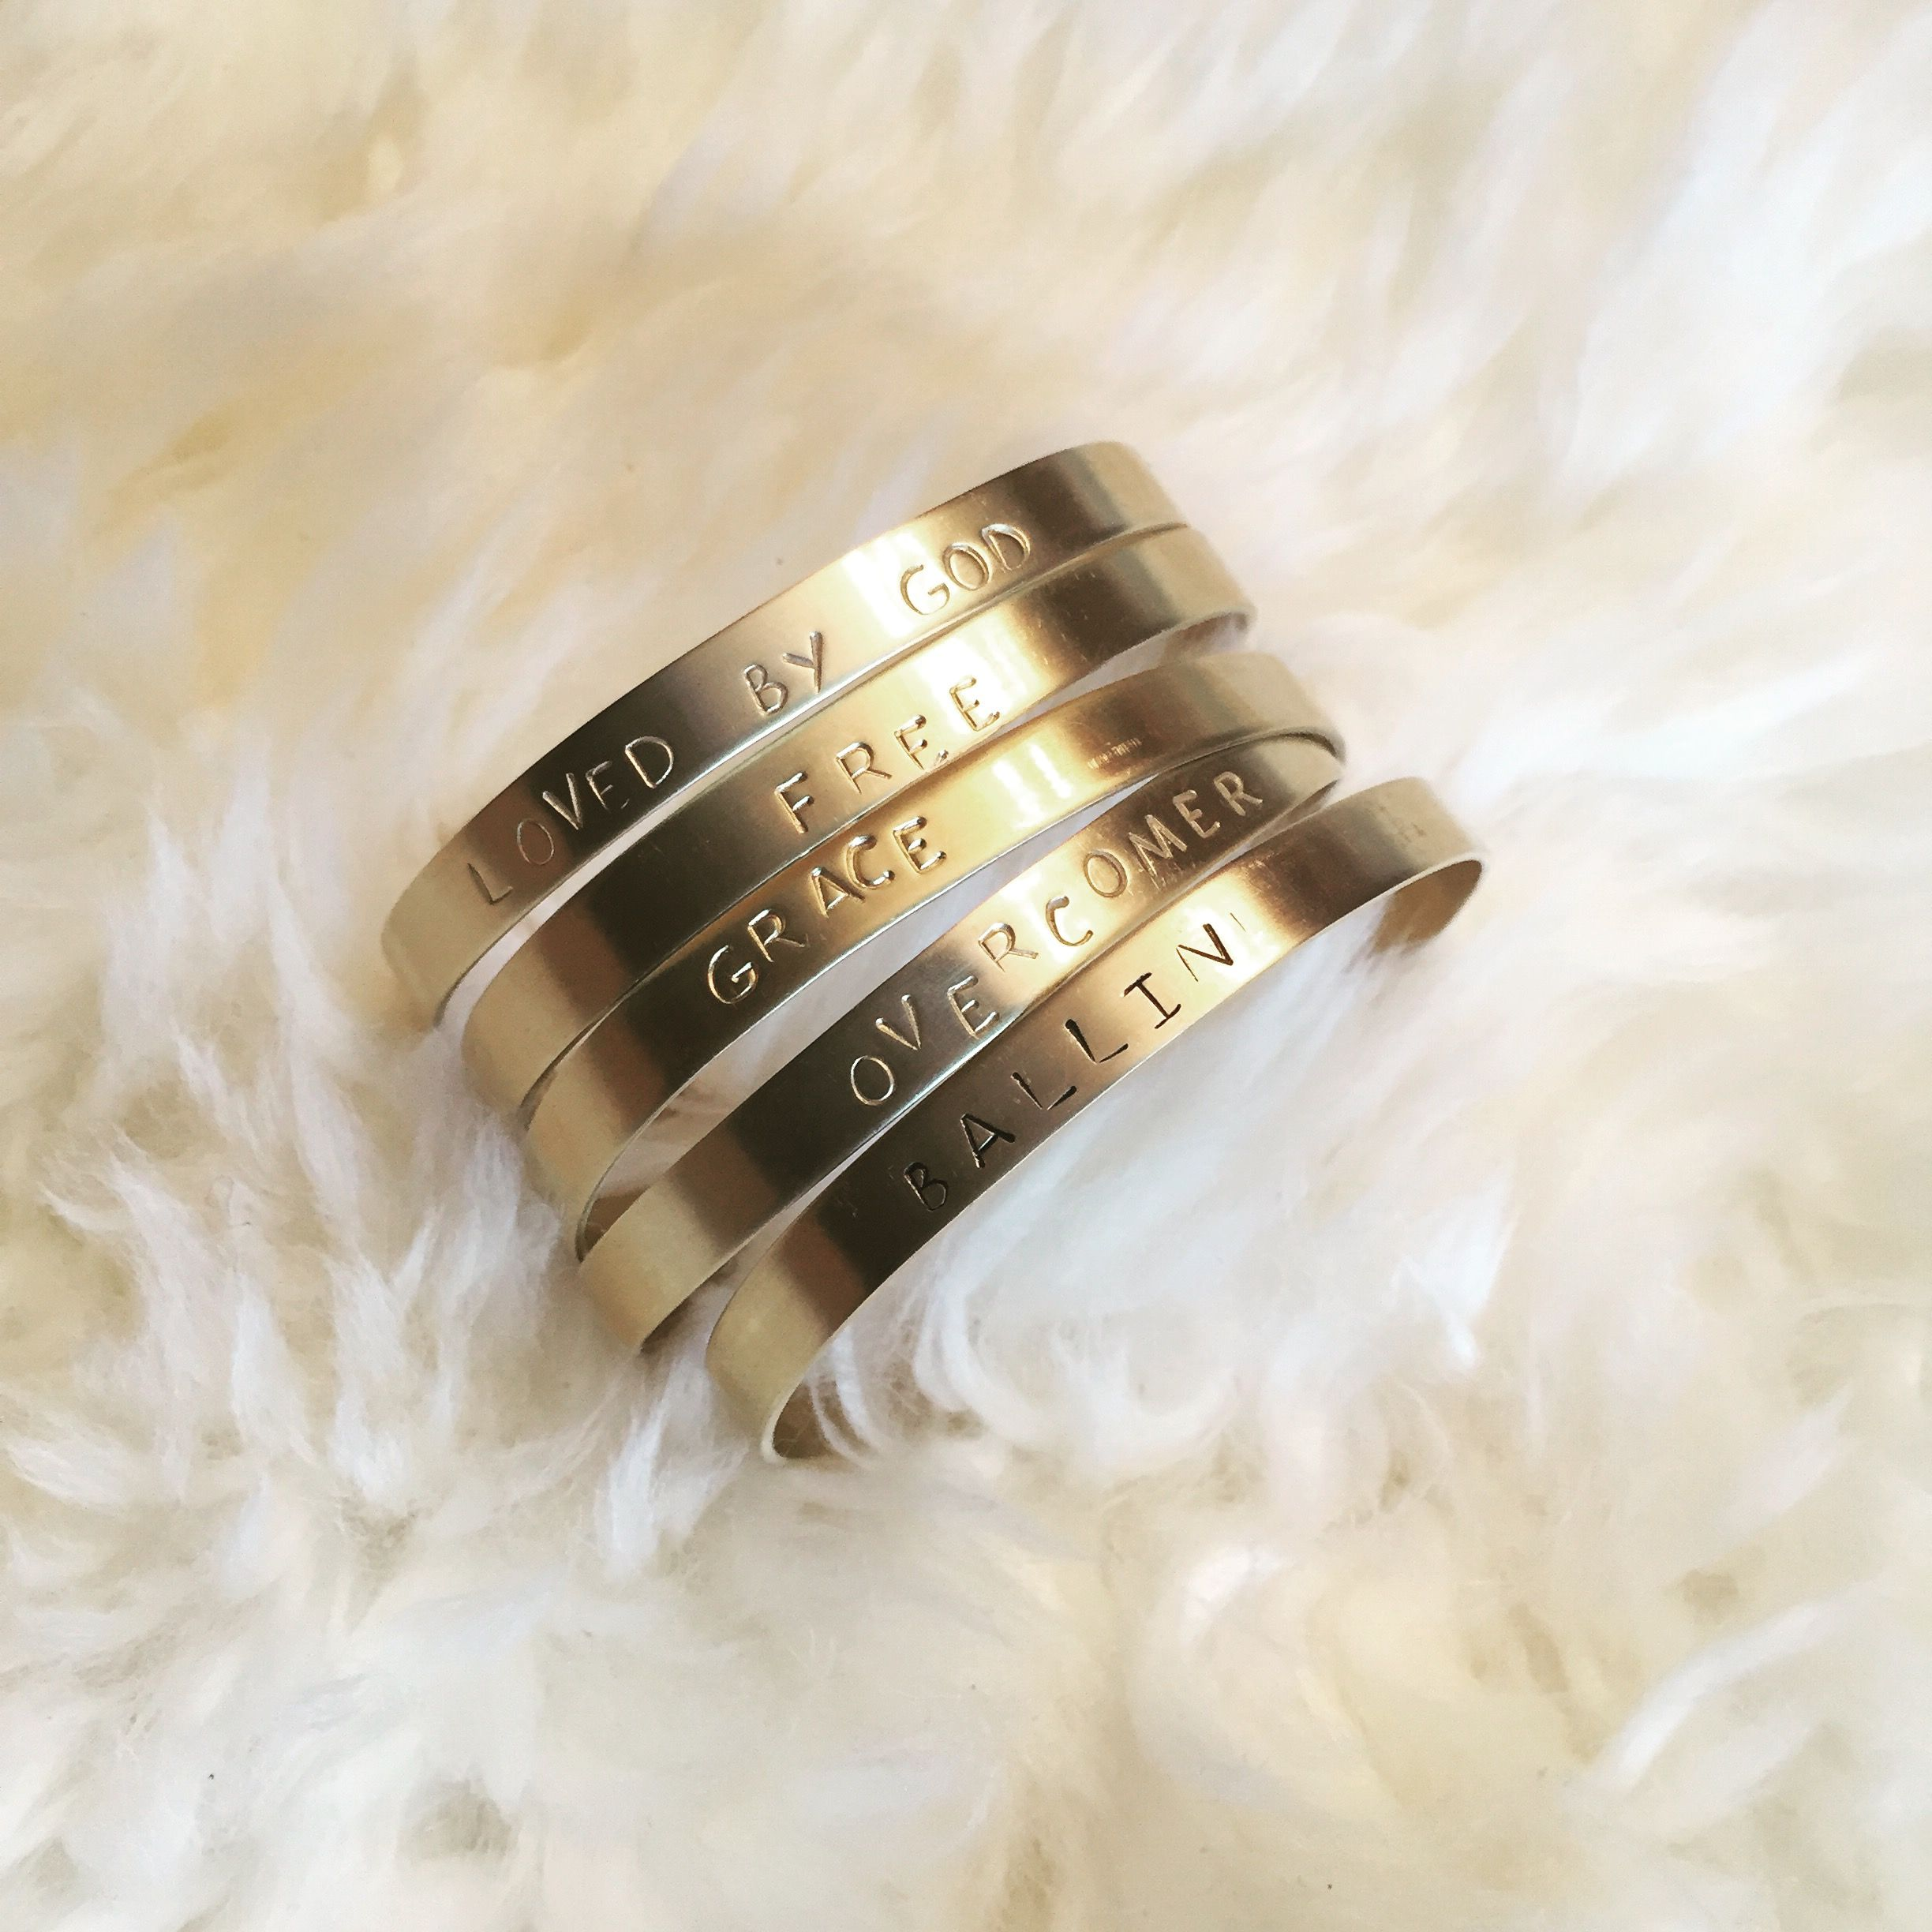 Cutomized stamped brass cuffs brass cuff shopping and fashion